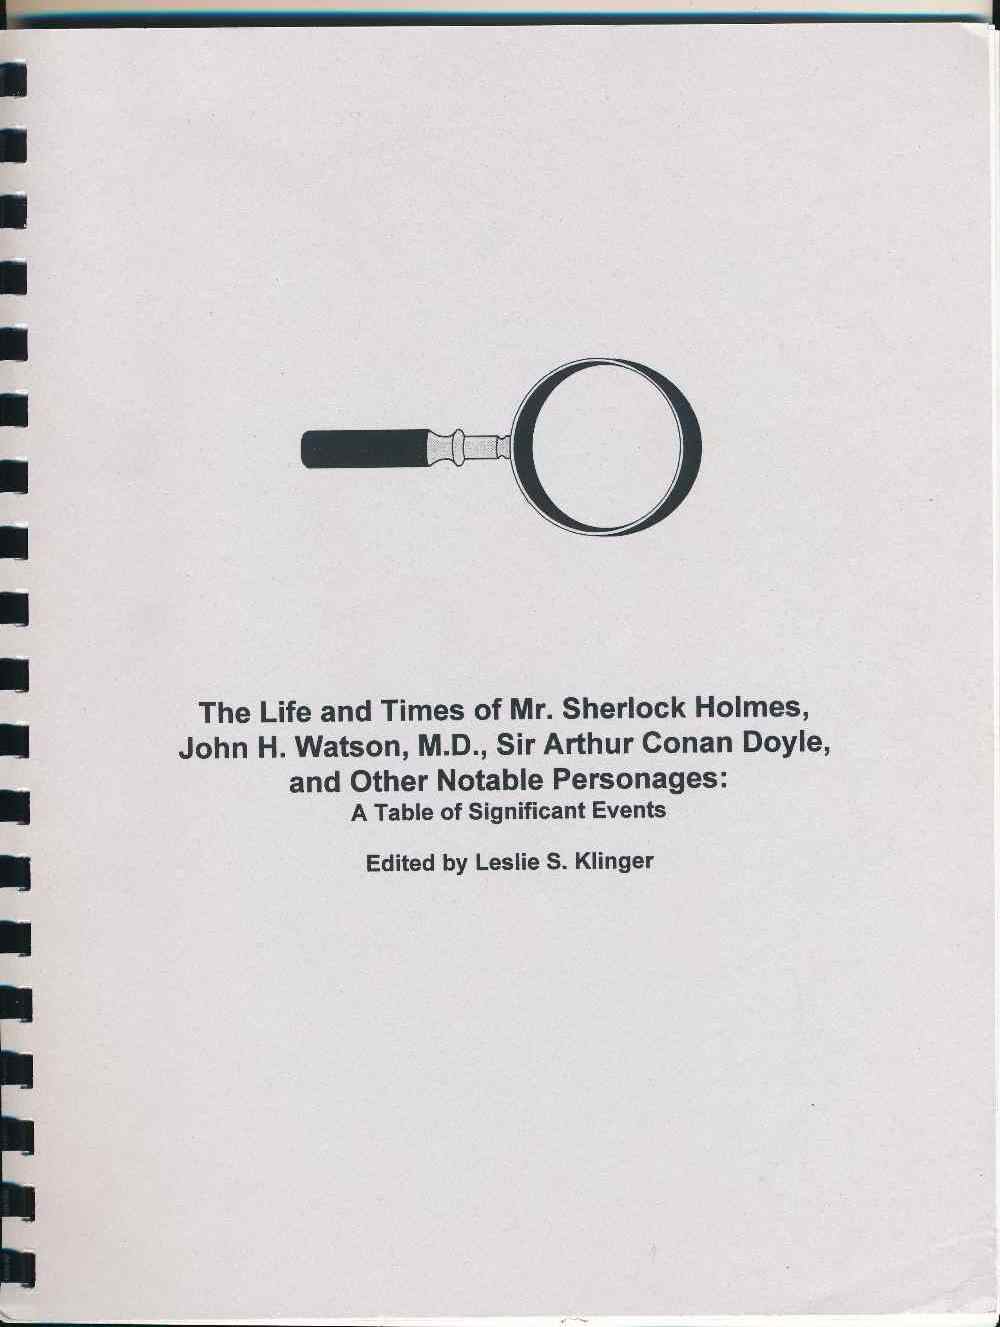 The life and times of Mr. Sherlock Holmes, John H. Watson, M.D., Sir Arthur Conan Doyle, and other notable personages : a table of significant events